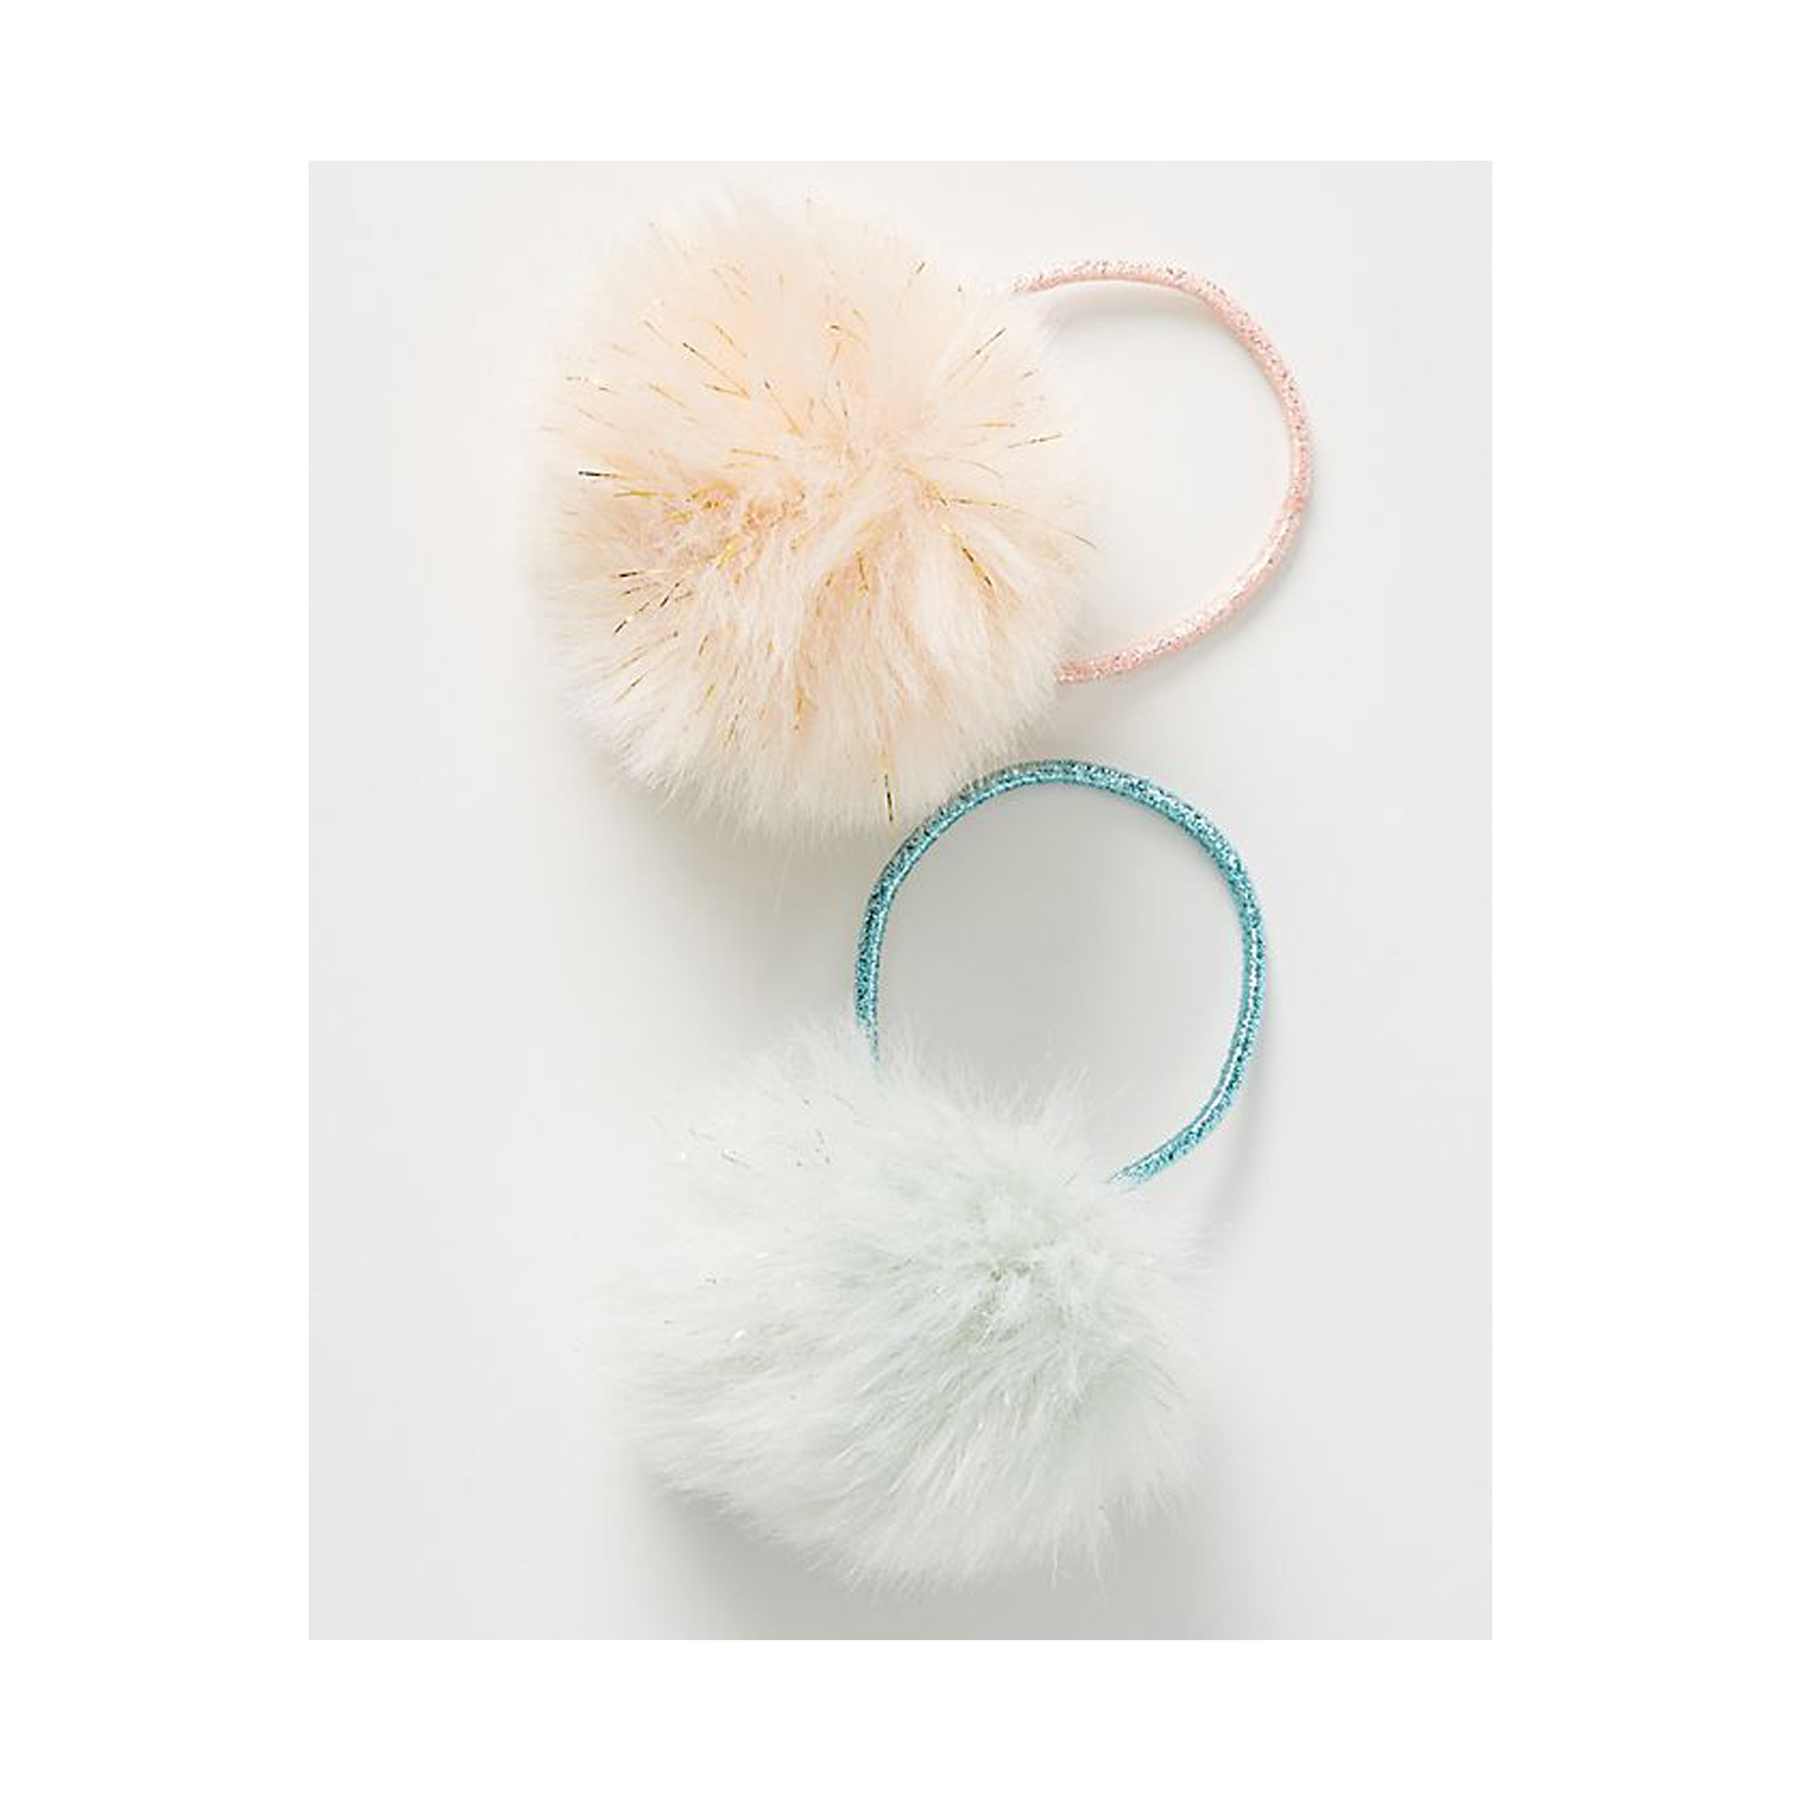 Cheap Christmas Gifts for Kids: Anthropologie pompom hair ties